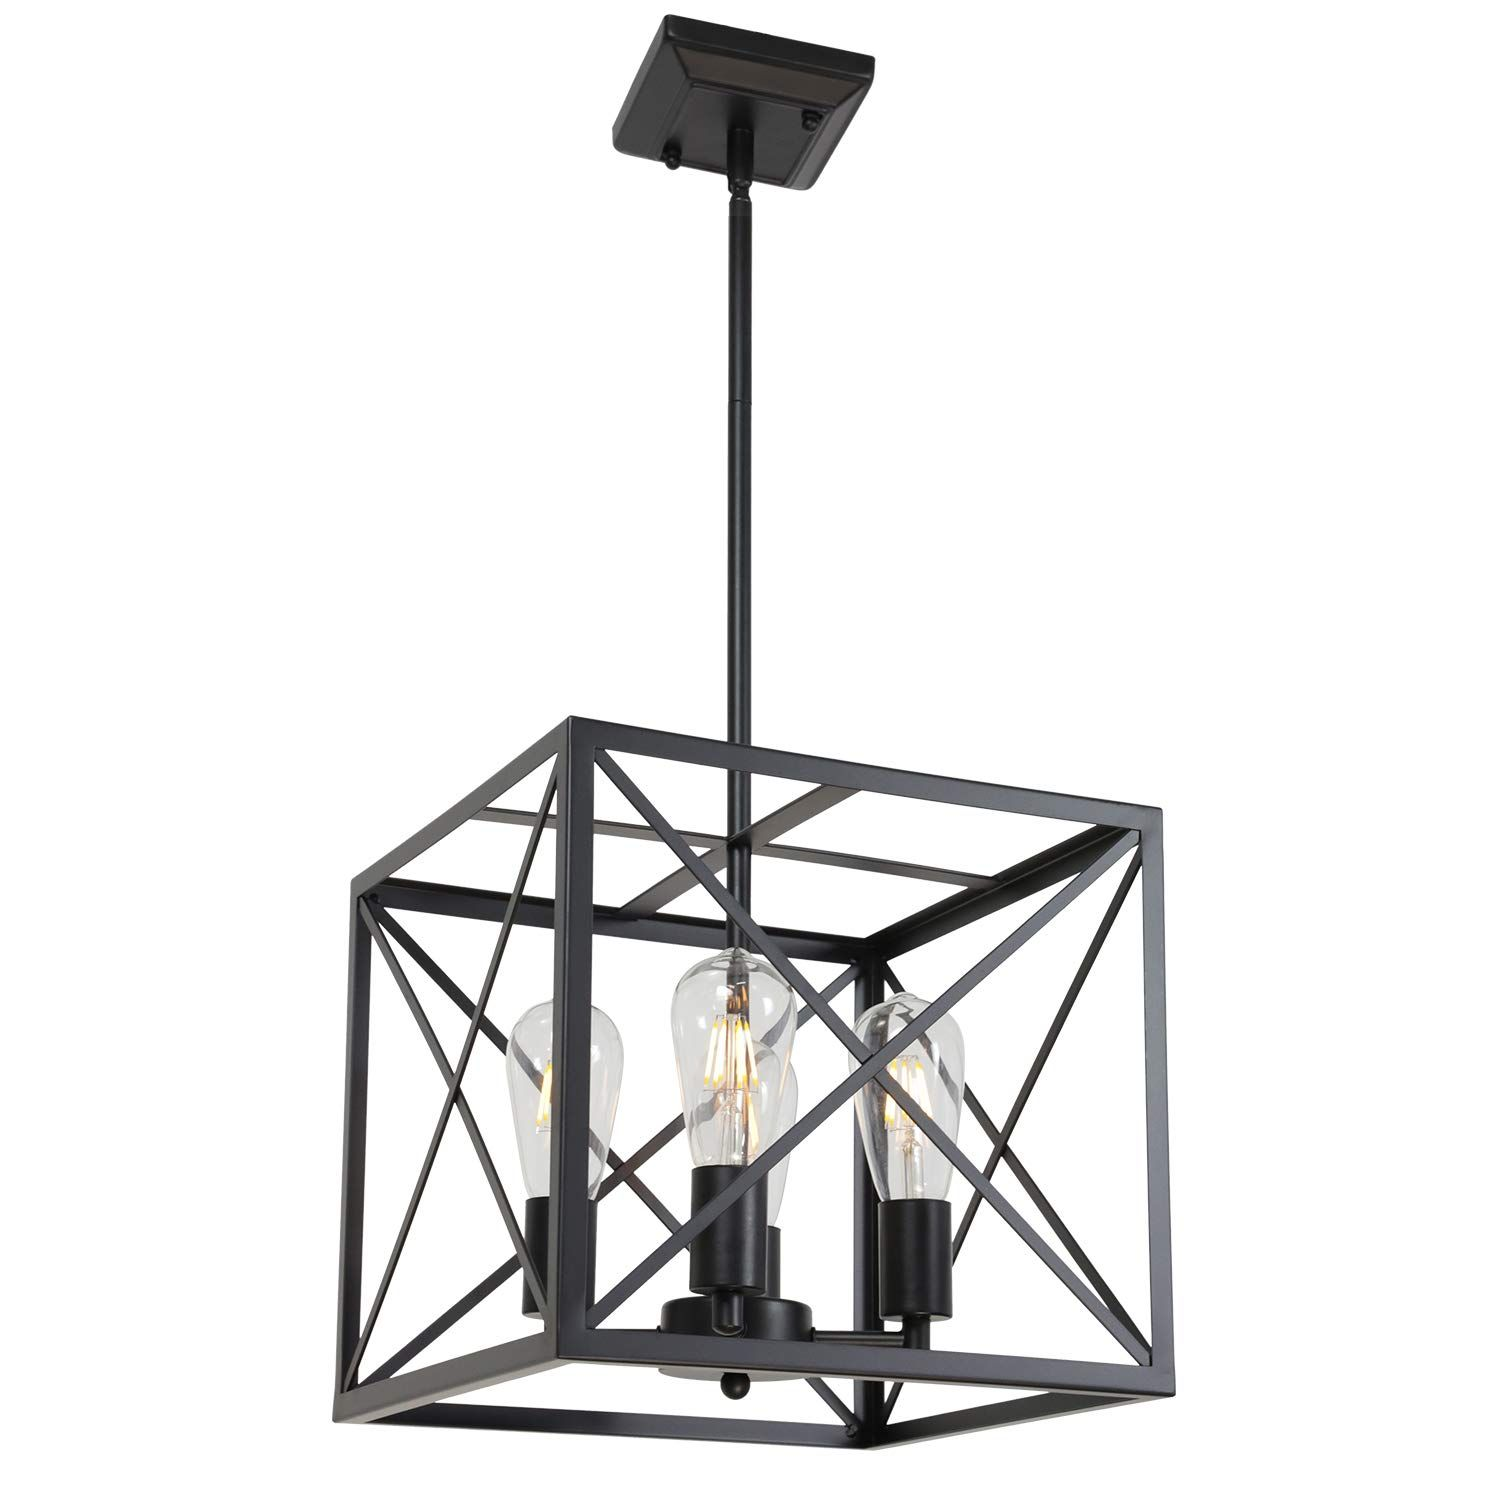 Melucee 4 Light Farmhouse Chandelier Black Finish Rustic Light Fixtures Ceiling Hanging In 2020 Rustic Light Fixtures Light Fixtures Staircase Farmhouse Light Fixtures